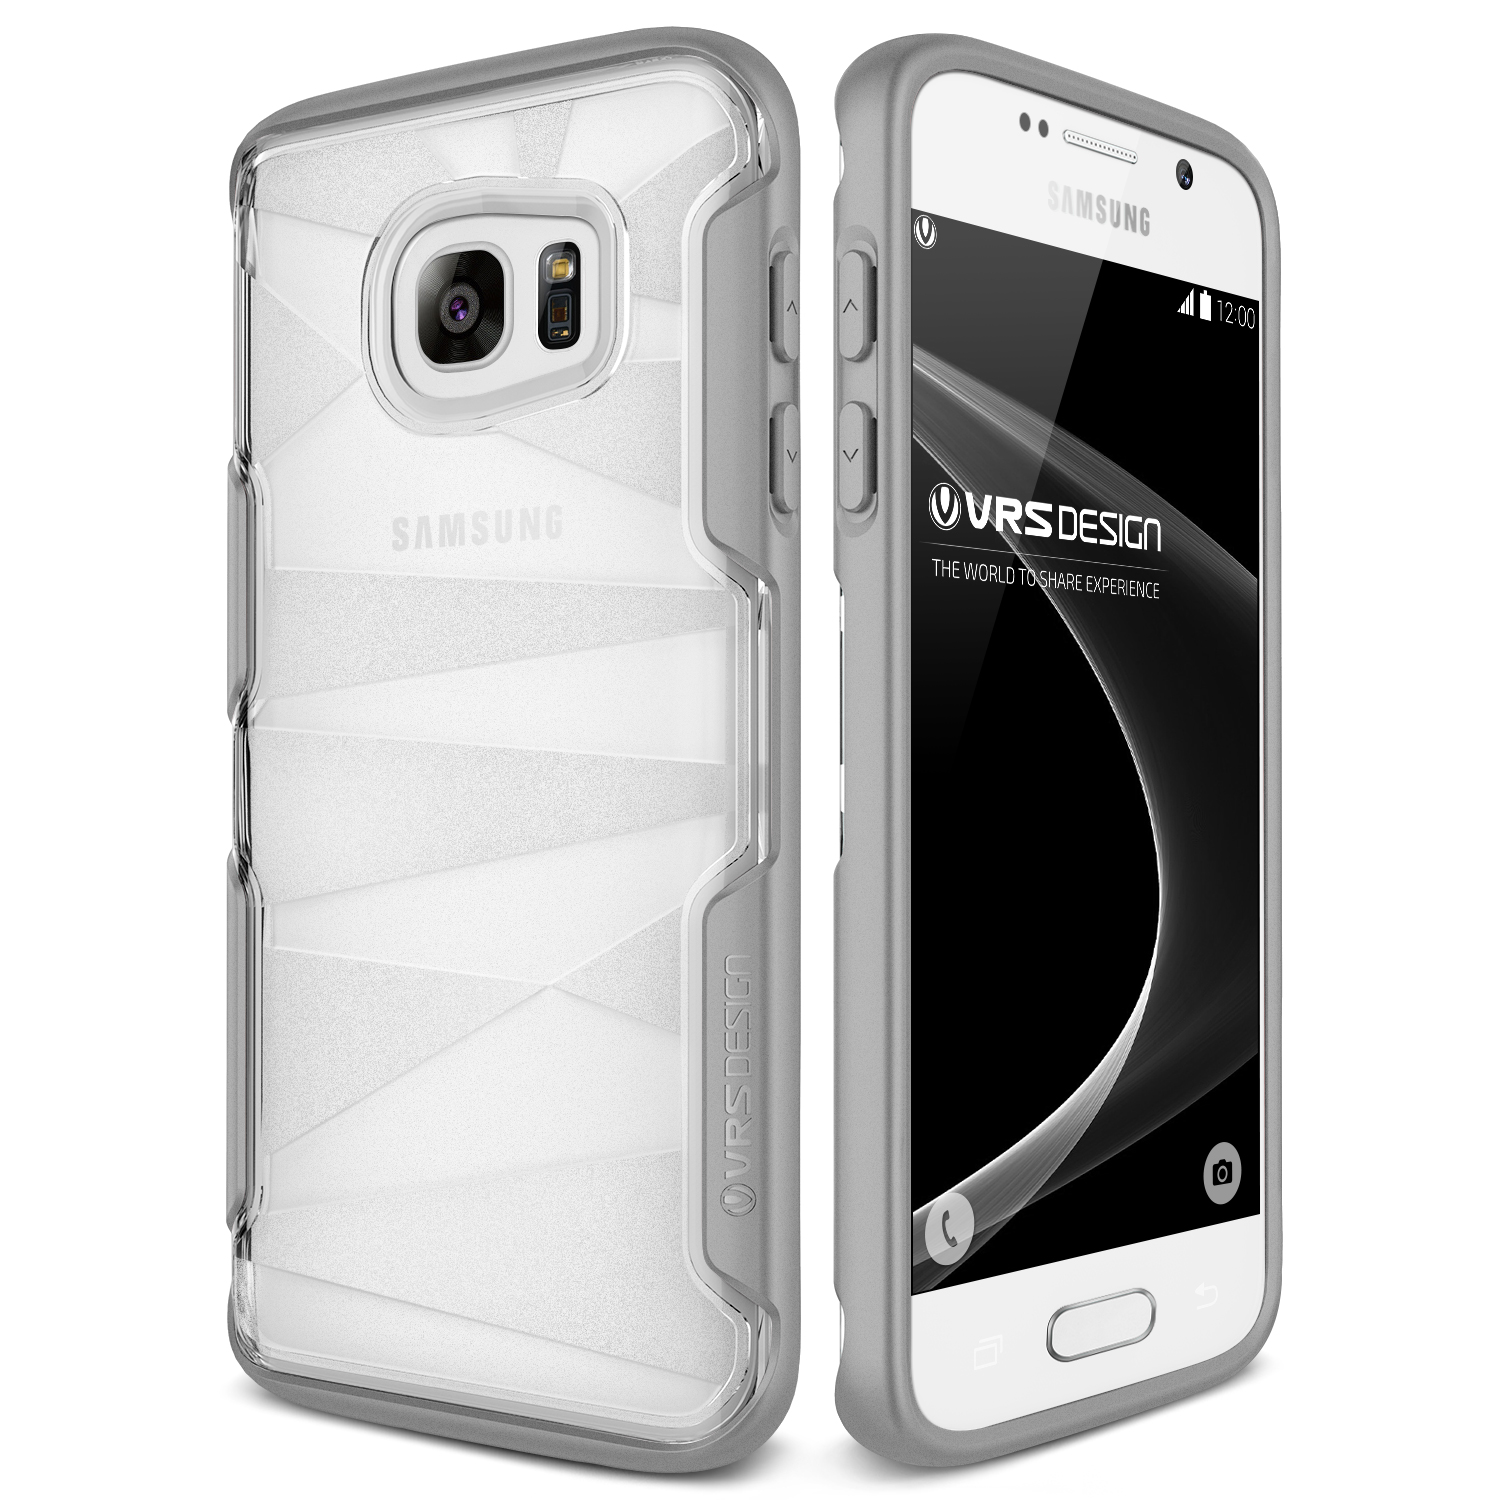 Samsung Galaxy S7 Case Cover | Slim Clear Protection | VRS Design Shine Guard for Samsung Galaxy S7